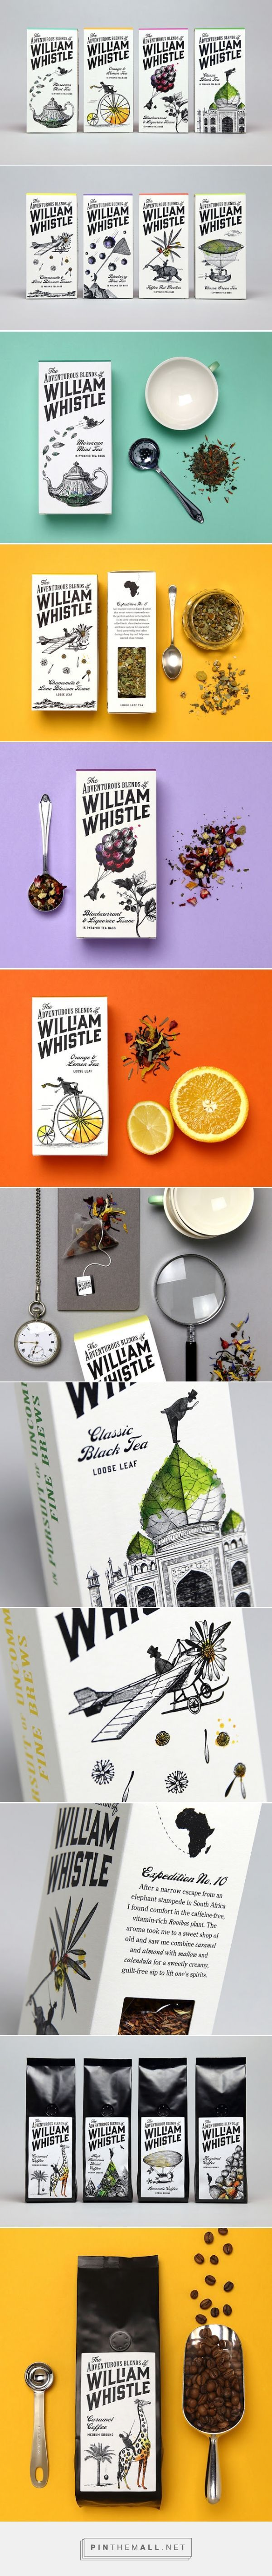 The Adventurous Blends of William Whistle by Horse Studio